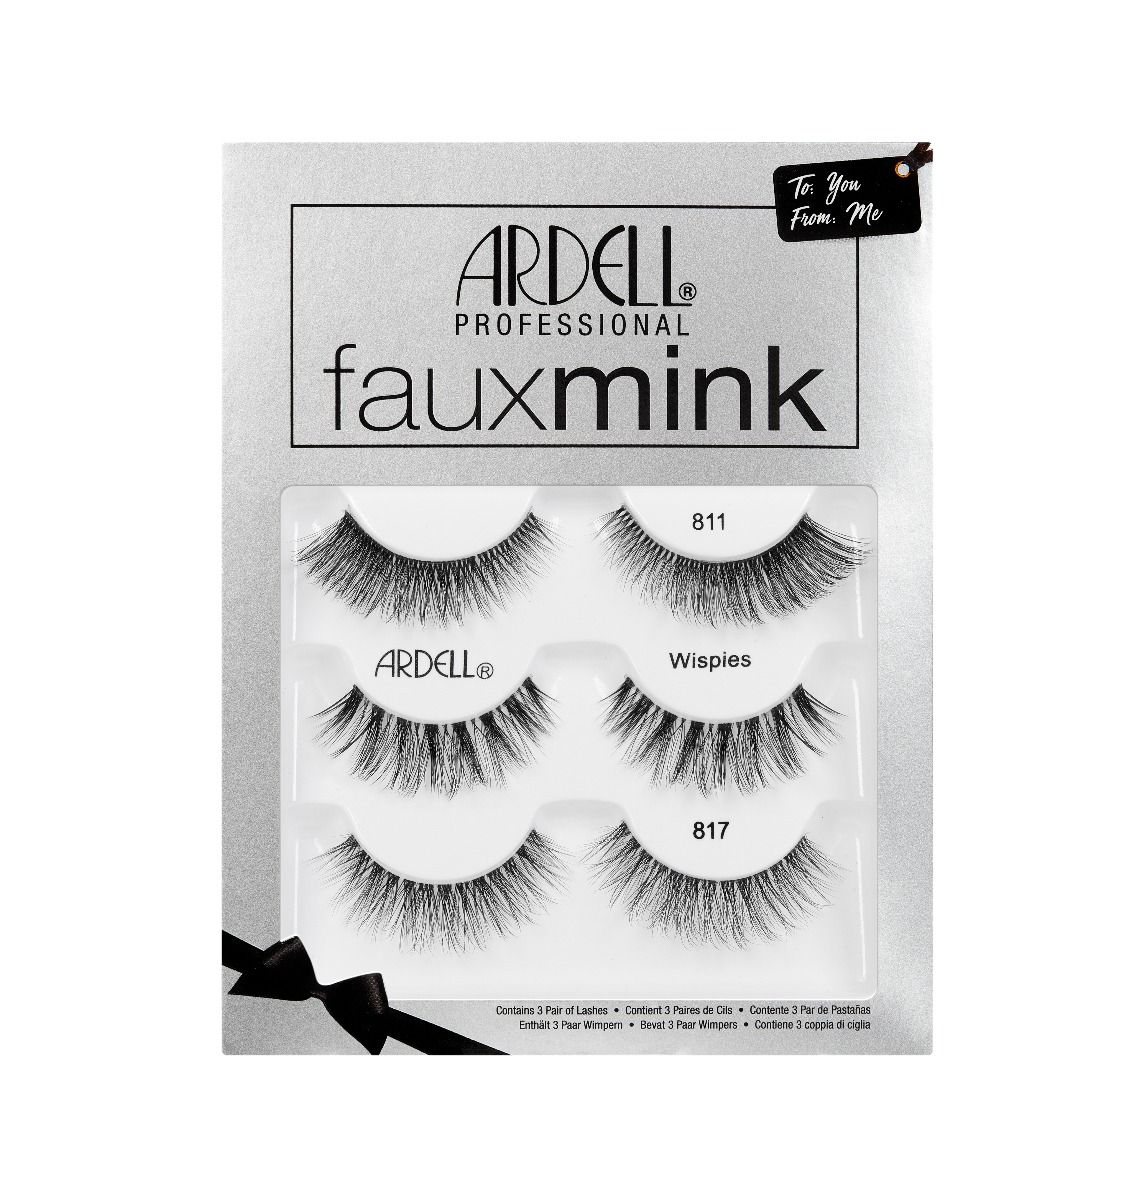 Ardell Faux Mink Variety 3 Pack #1 (71138)